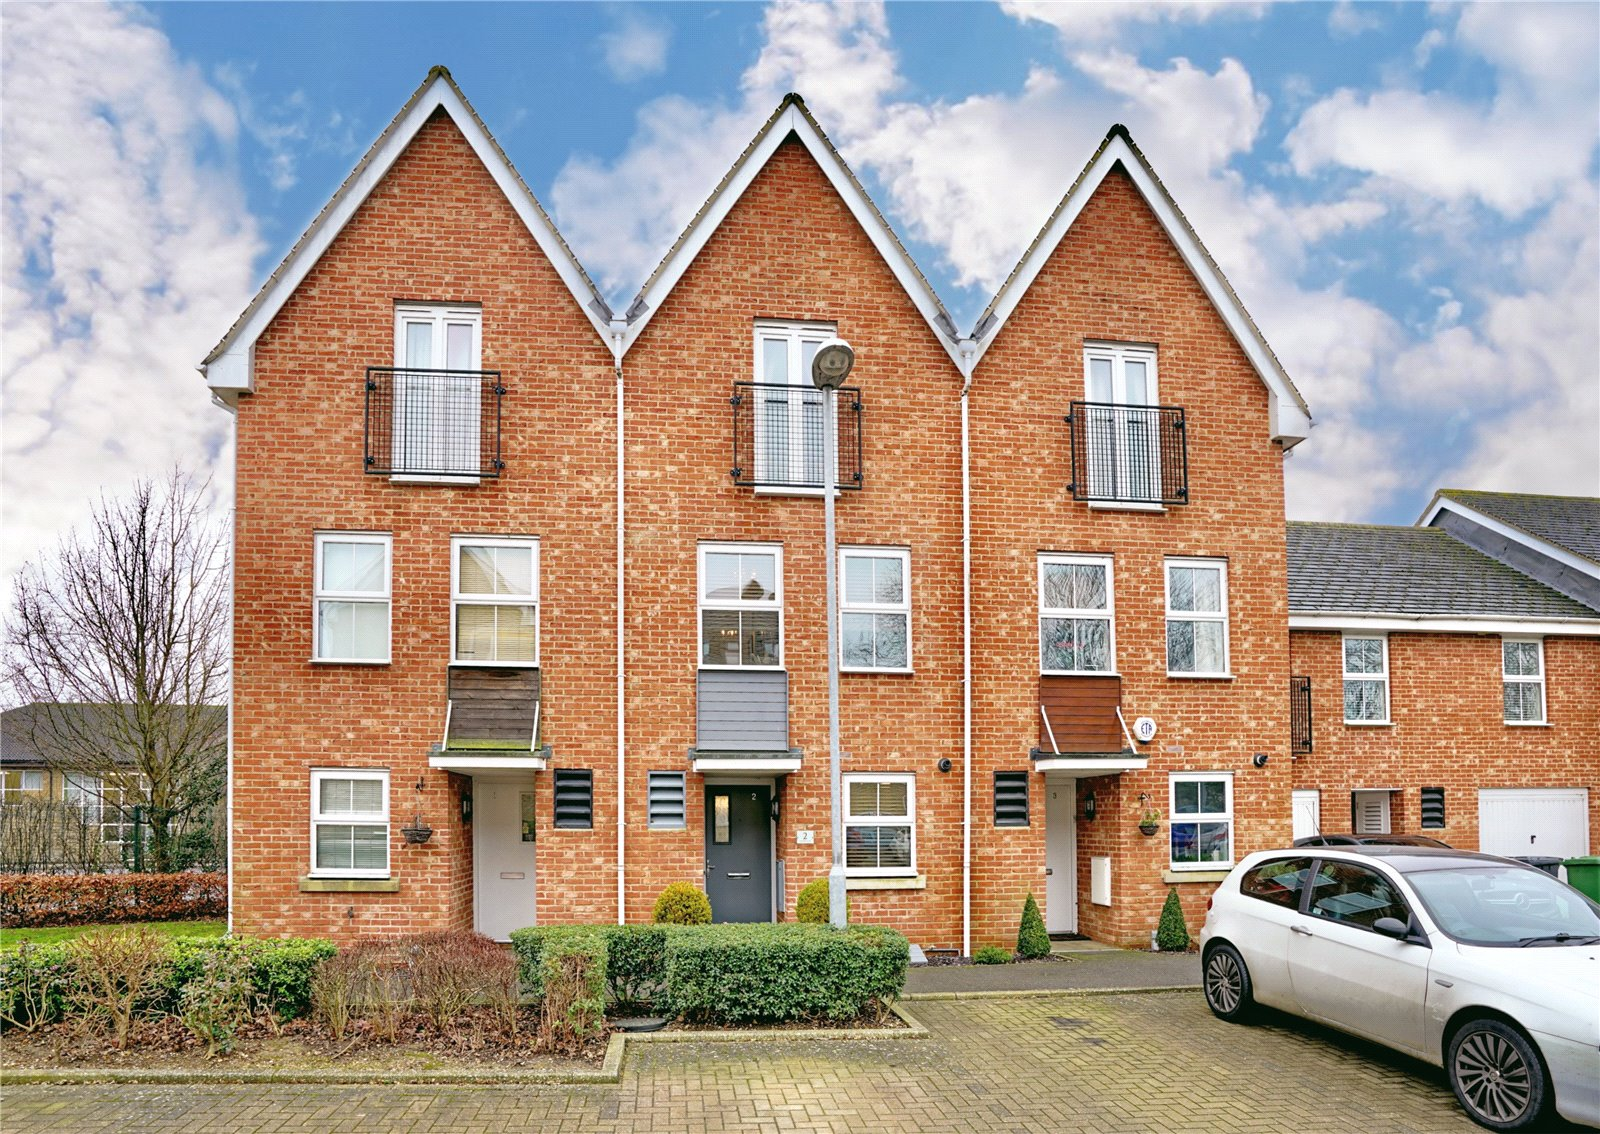 4 bed house for sale in Linton Close, Eaton Socon  - Property Image 1